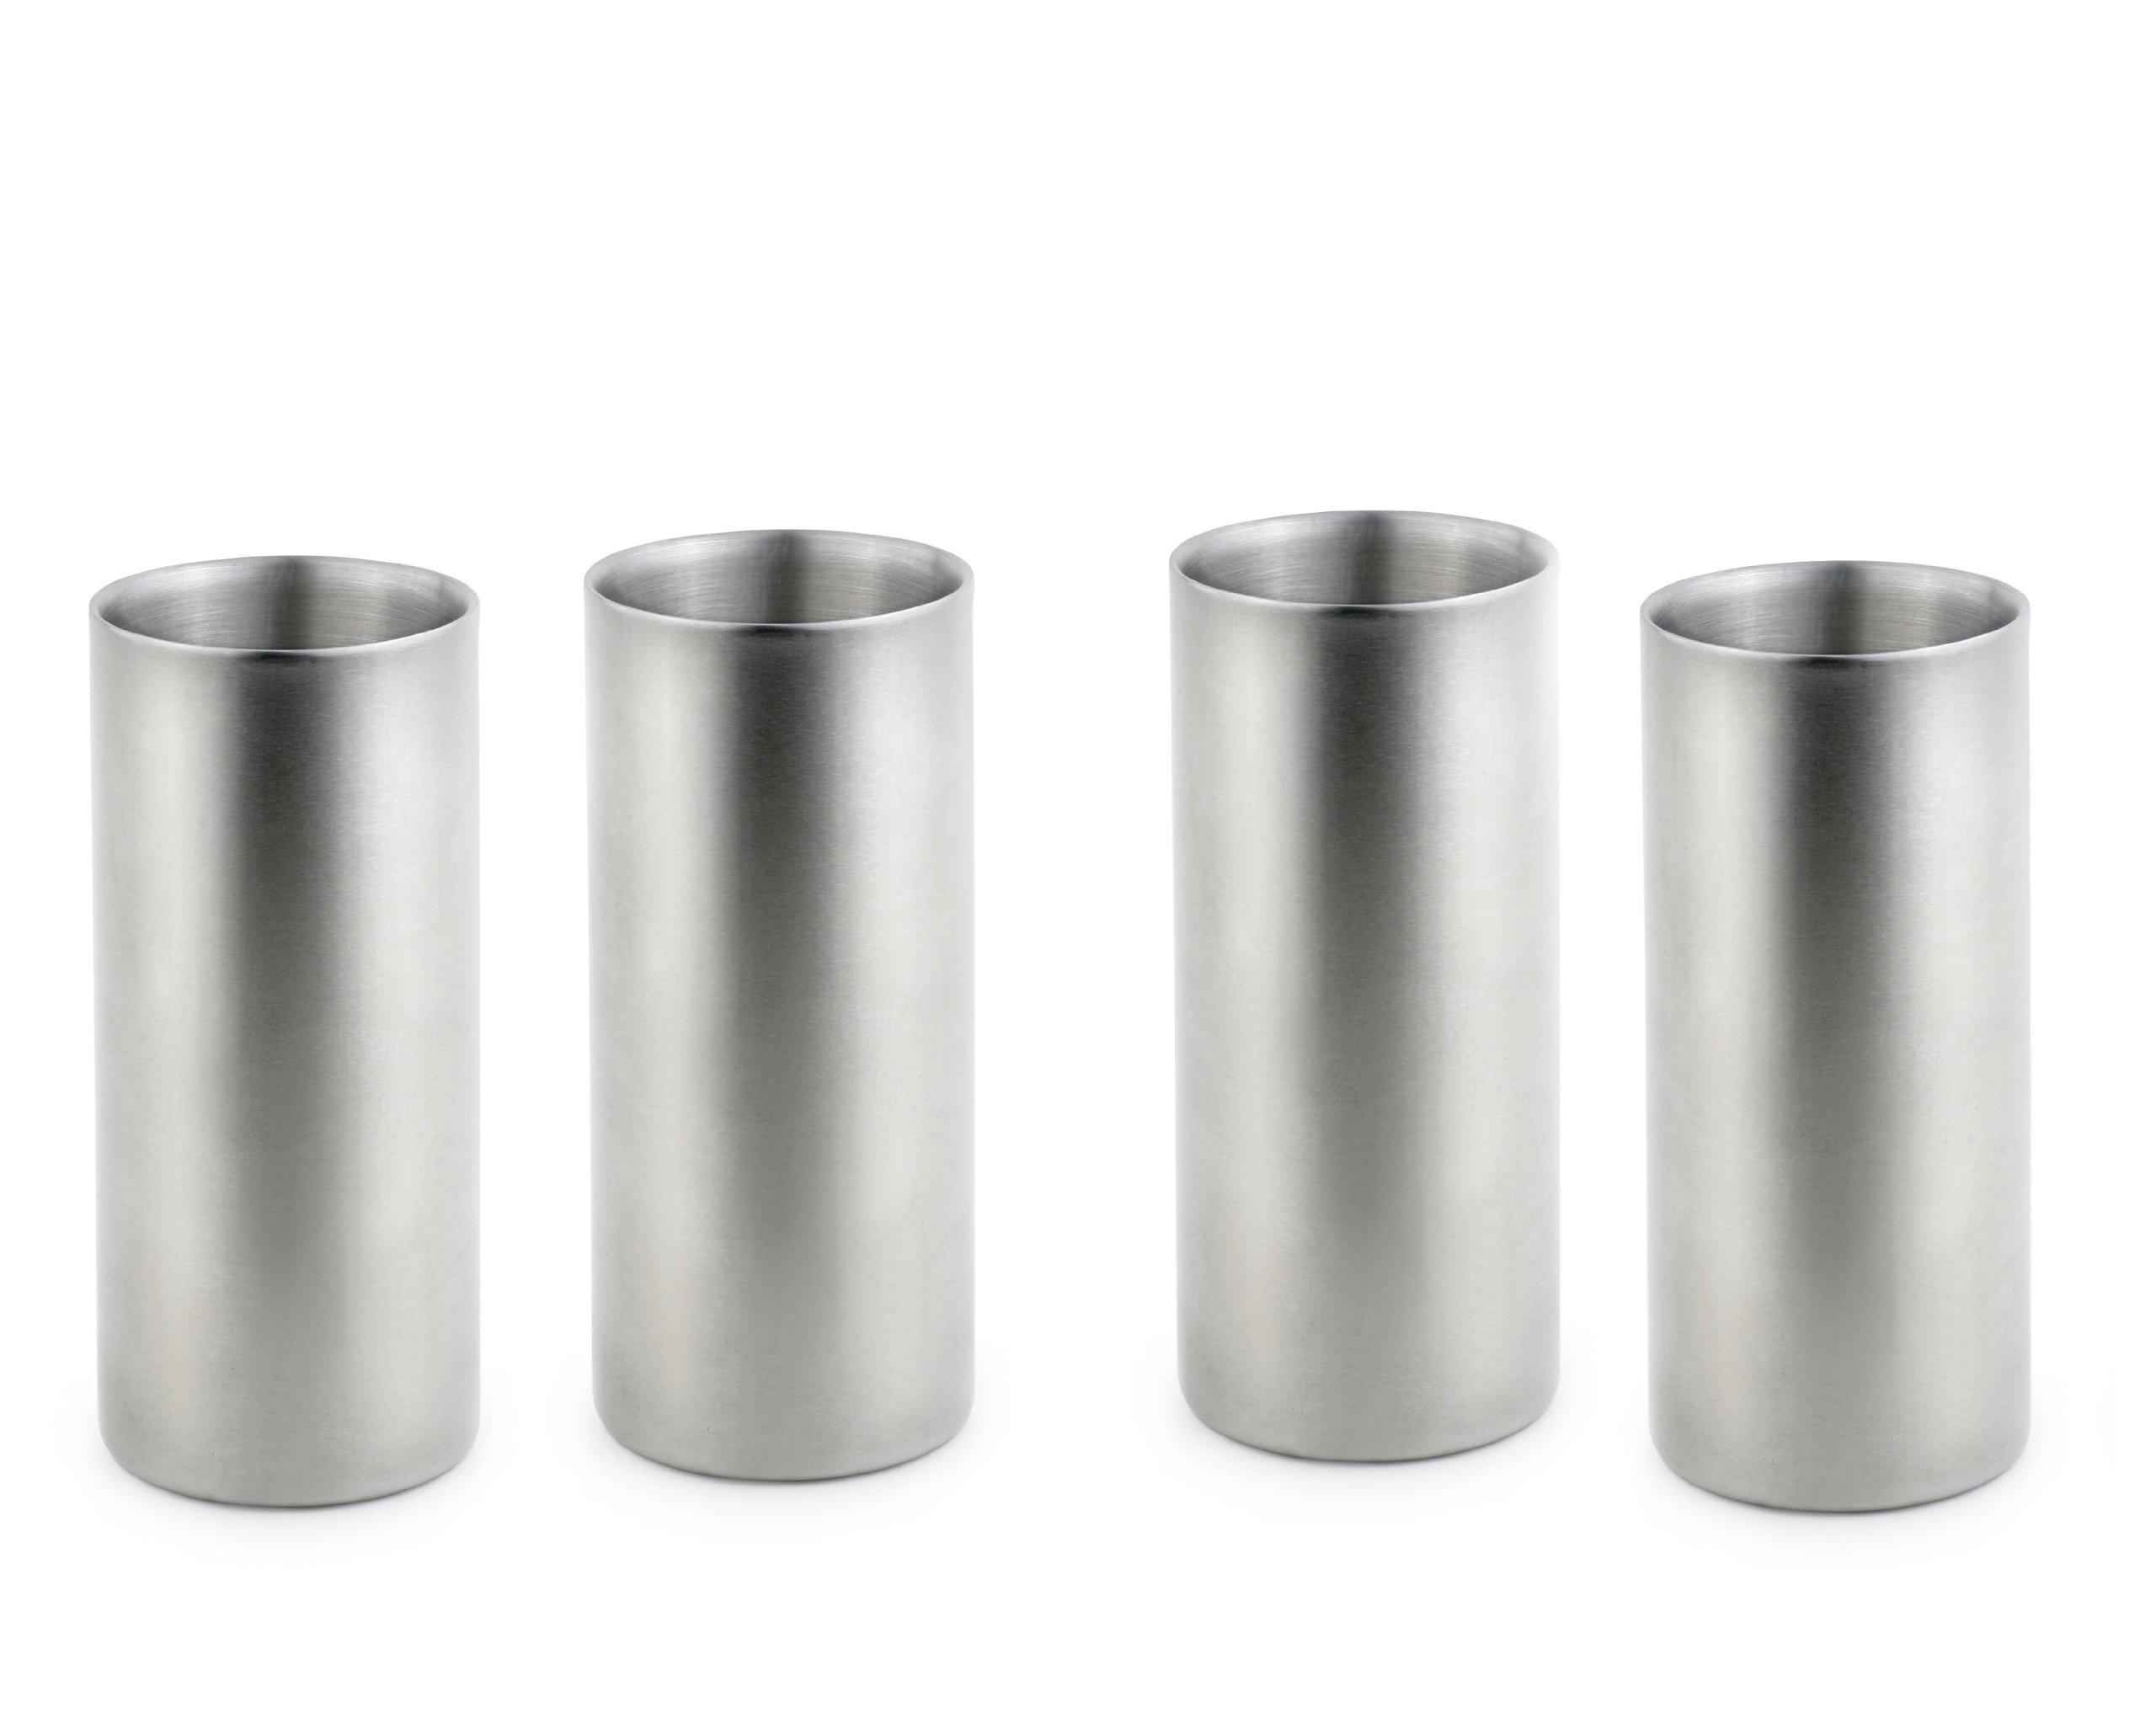 StainlessLUX 77317 Double walled Stainless Steel Drinking Glasses, 12-Ounce/1.5 Cup, Set of 4